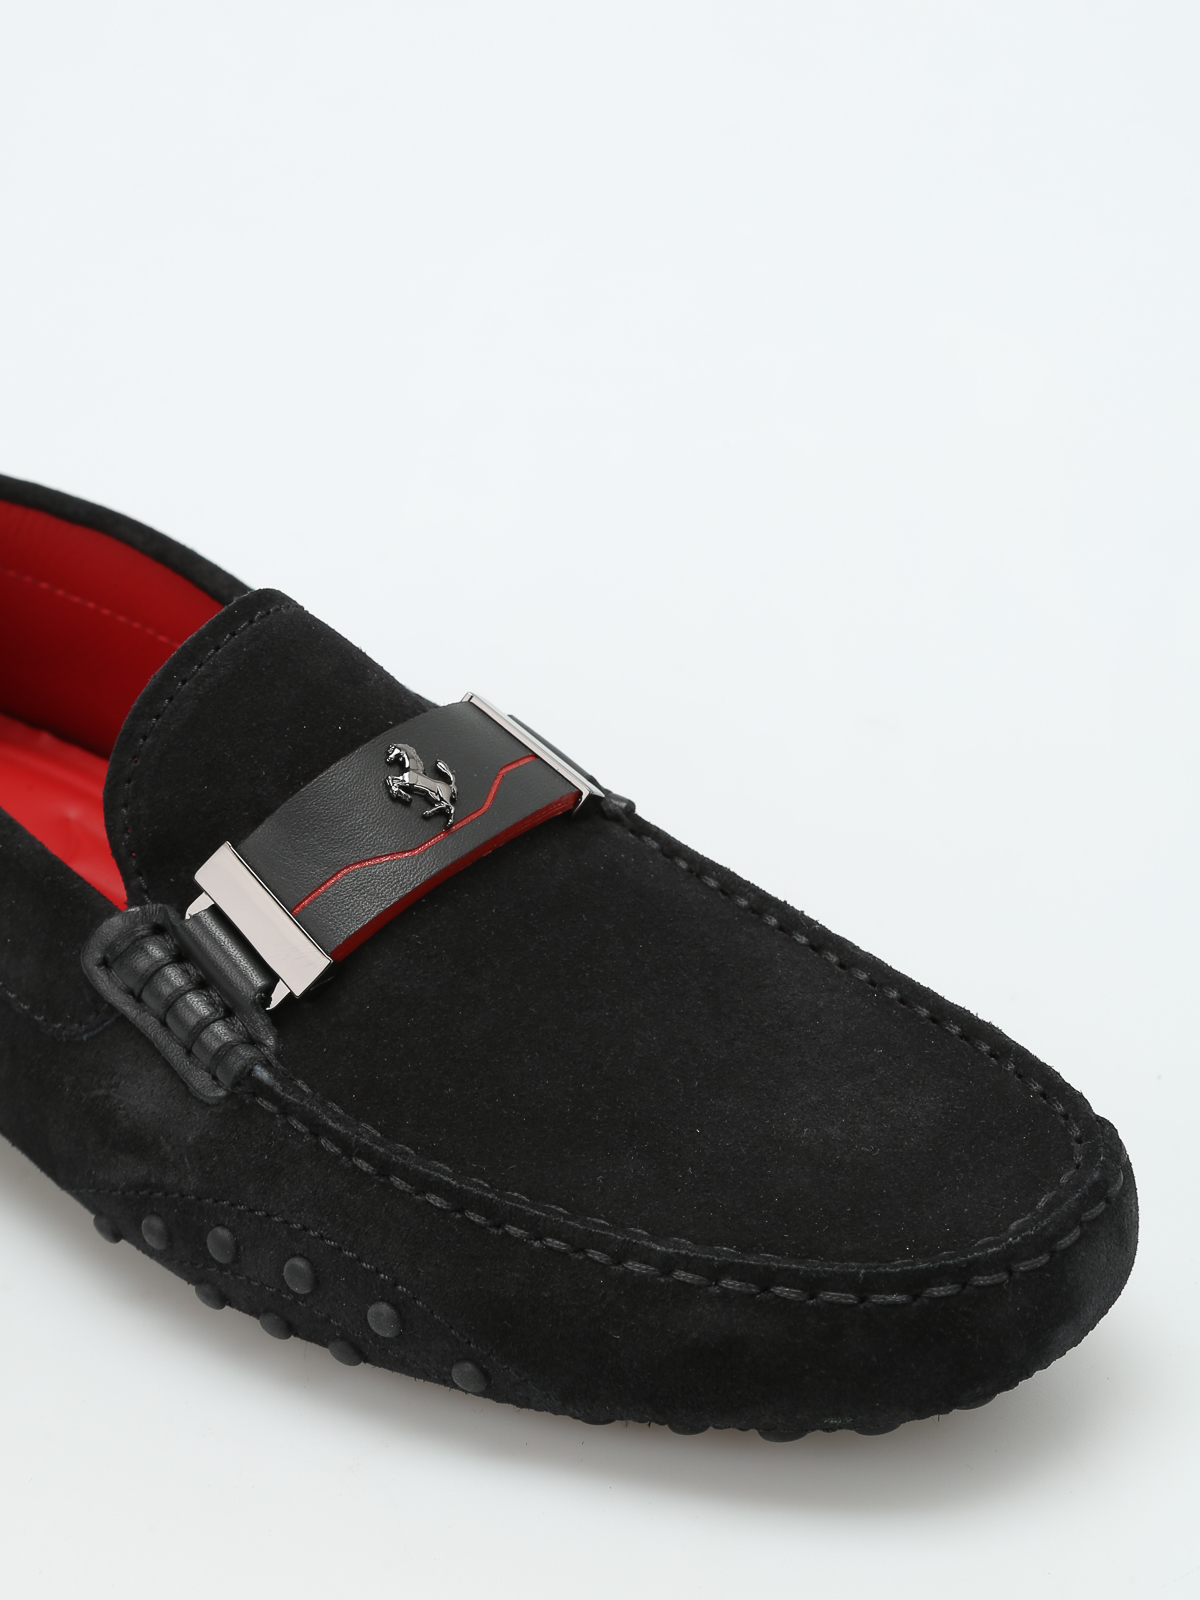 co branded s pinterest shoes tods tod to launch pin ferrari gommino make craftsmanship line comparison